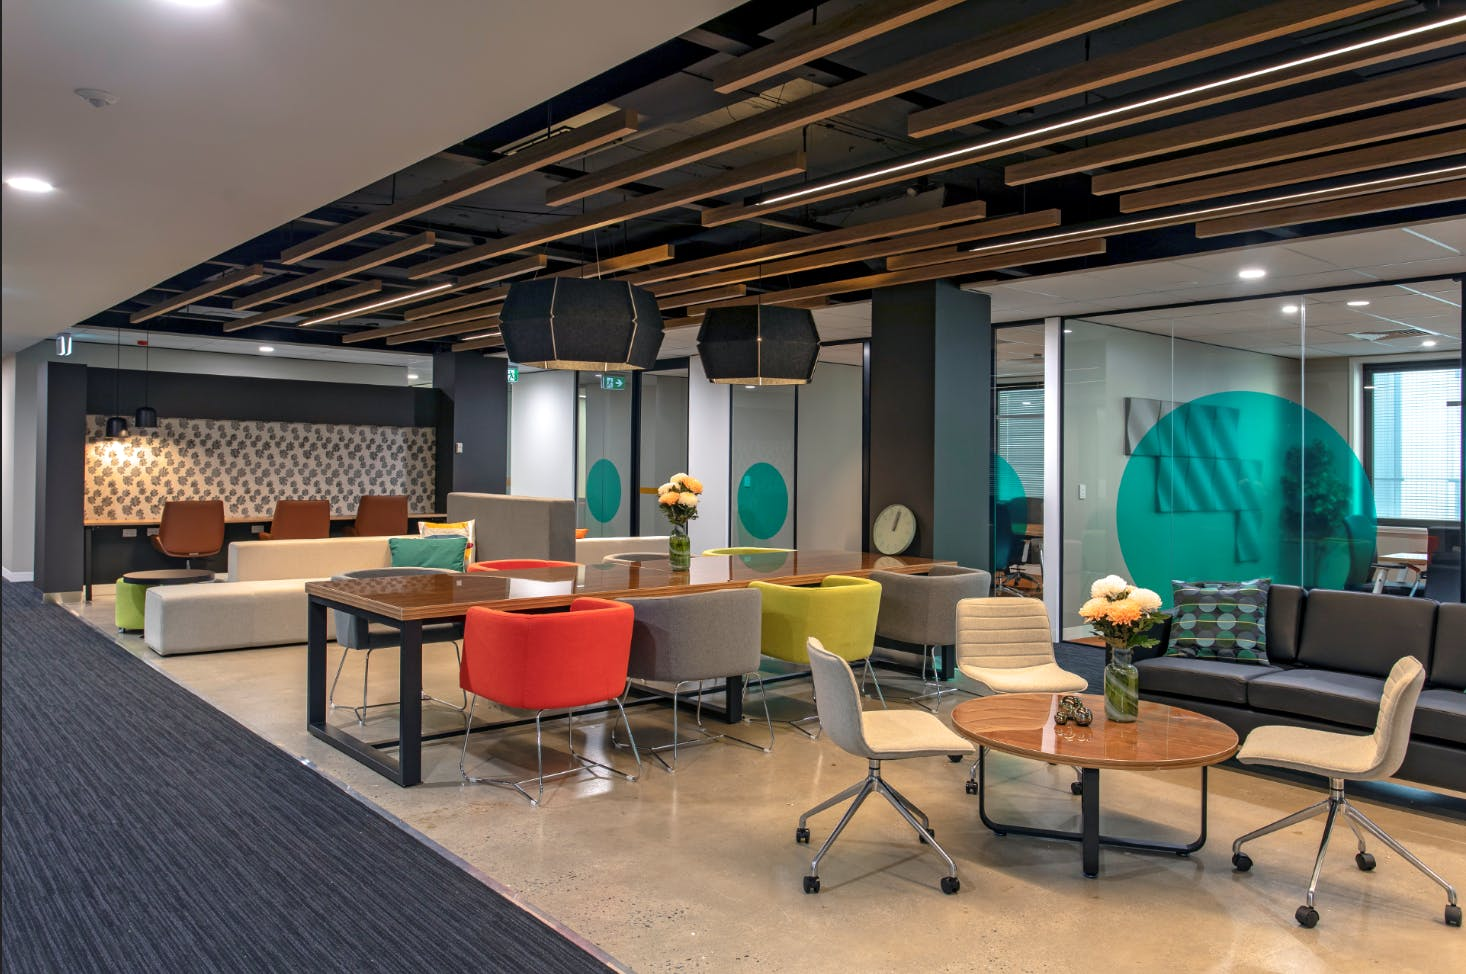 Suite 7, serviced office at Spot Co-Working, image 1